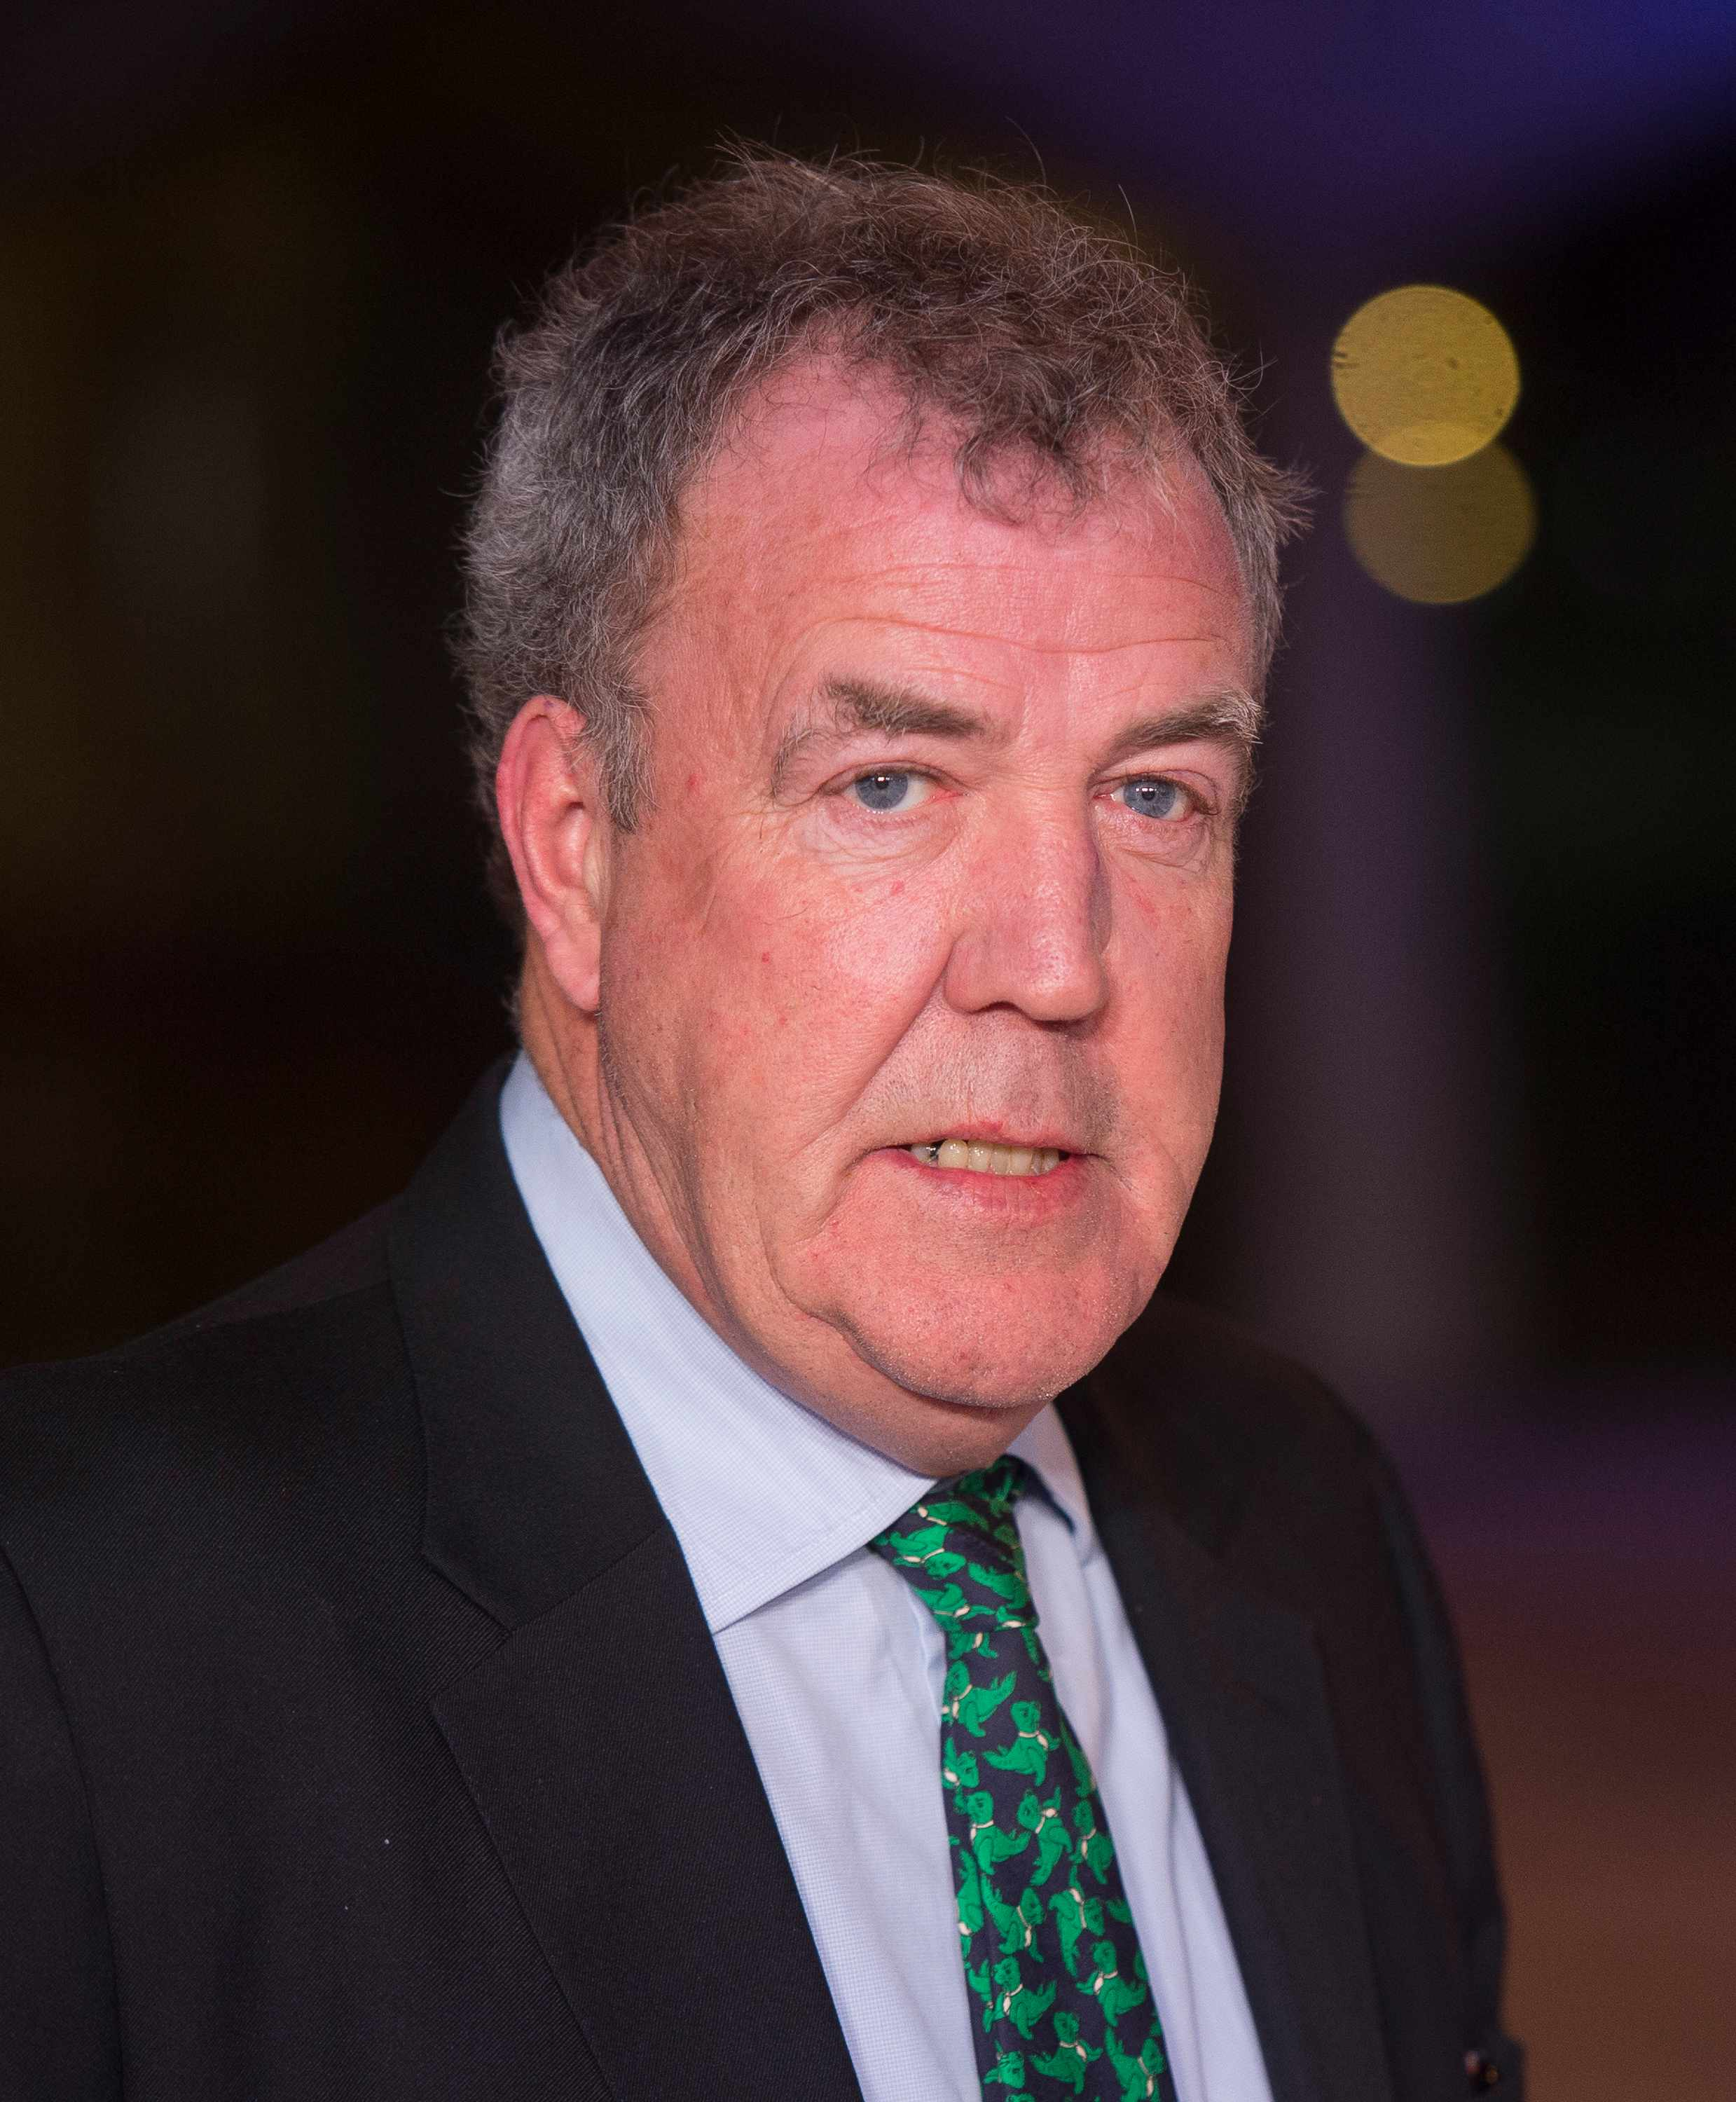 LONDON, ENGLAND - DECEMBER 14:  Jeremy Clarkson attends The Sun Military Awards at The Guildhall on December 14, 2016 in London, England.  (Photo by Samir Hussein/Samir Hussein/WireImage)